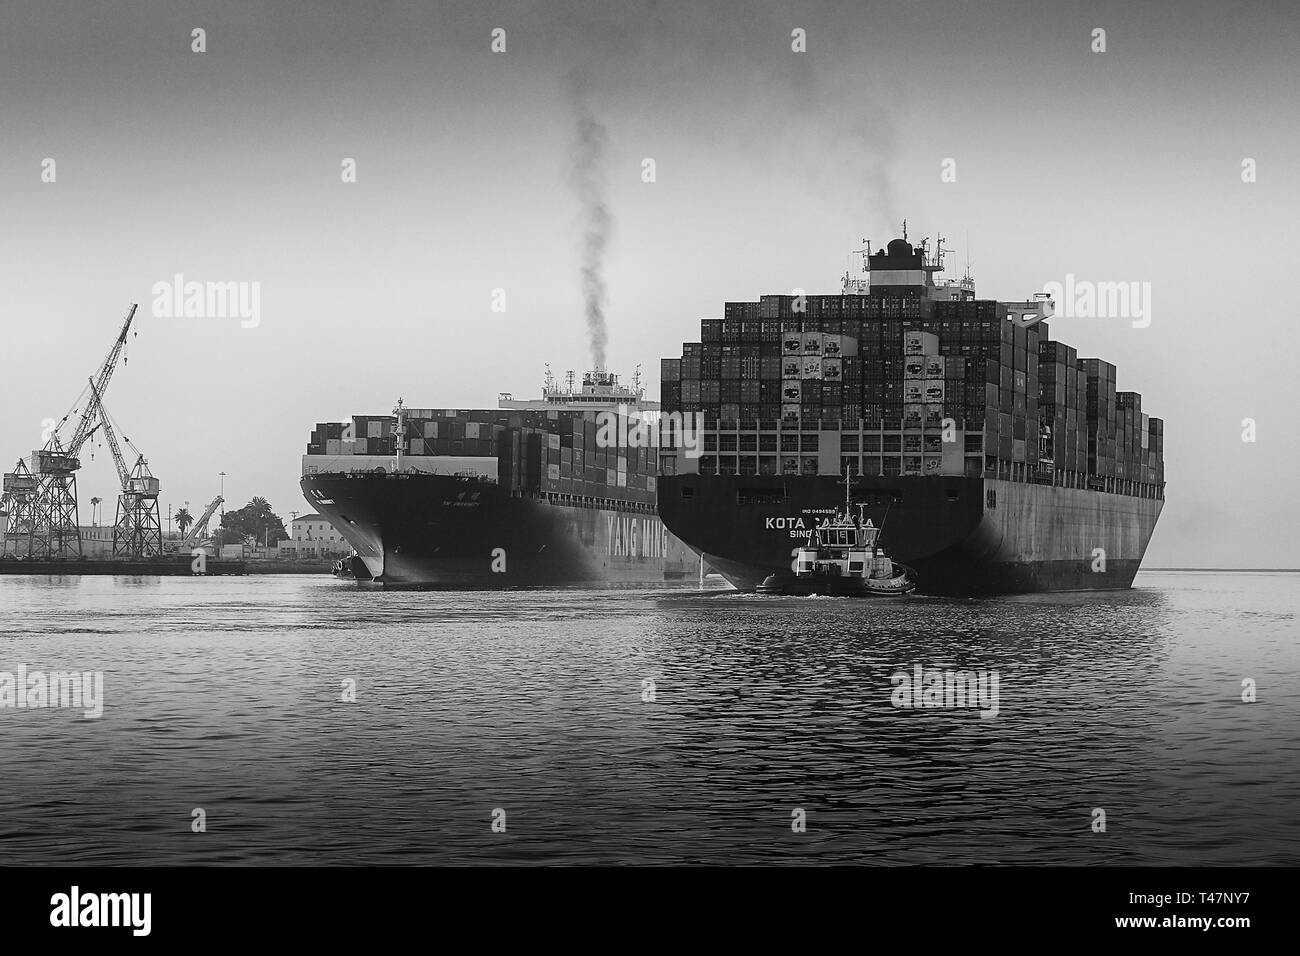 The Departing Container Ship KOTA CAHAYA, Passing Close To The Arriving YM UNANIMITY In The Busy Los Angeles Main Channel At The Port Of Los Angeles. - Stock Image